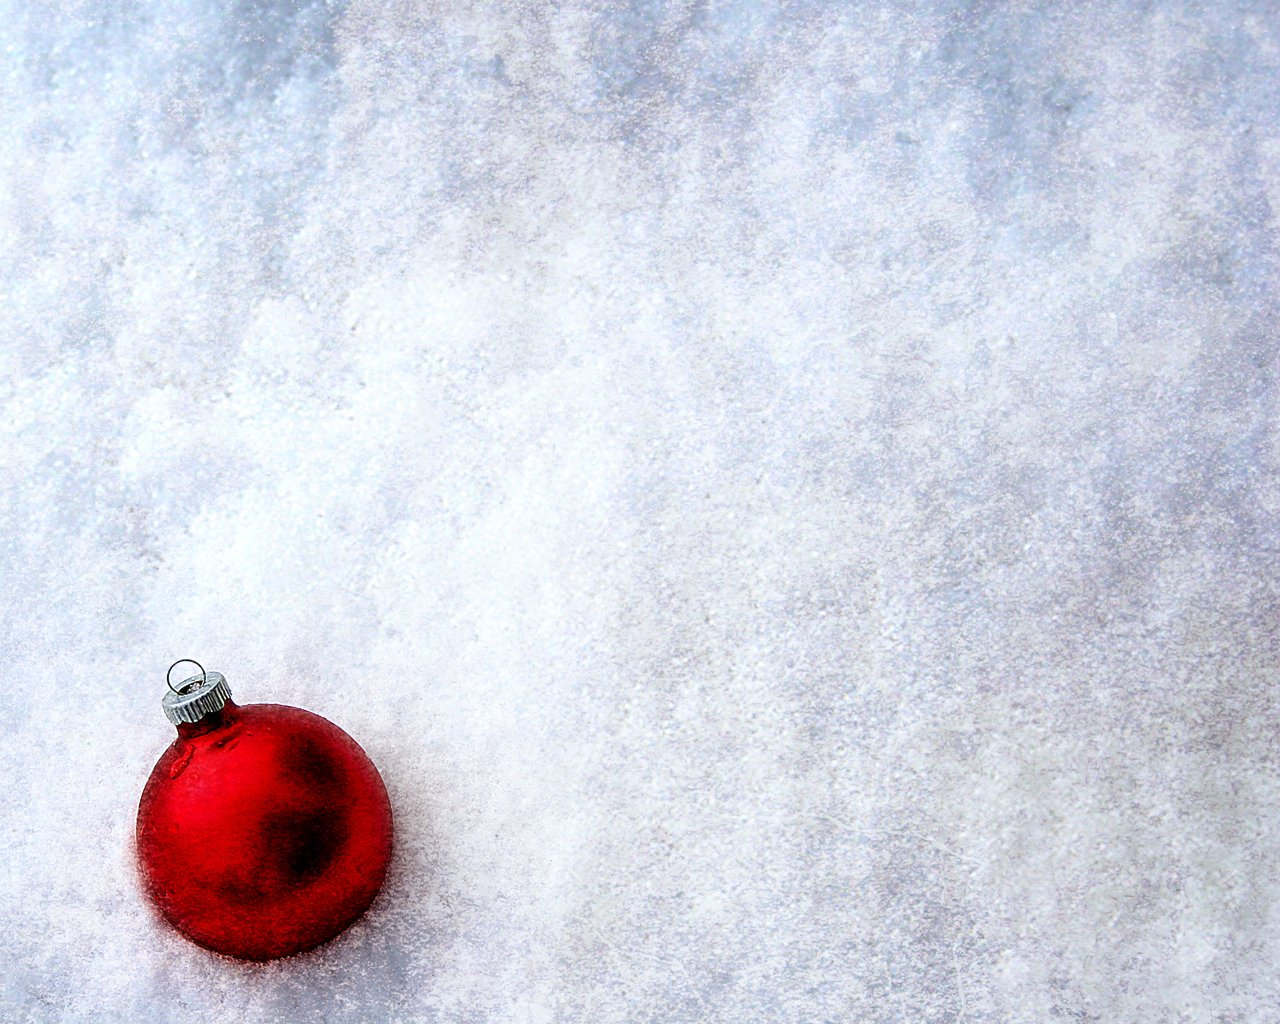 Christmas Desktop Backgrounds to Celebrate the Holidays 1280x1024